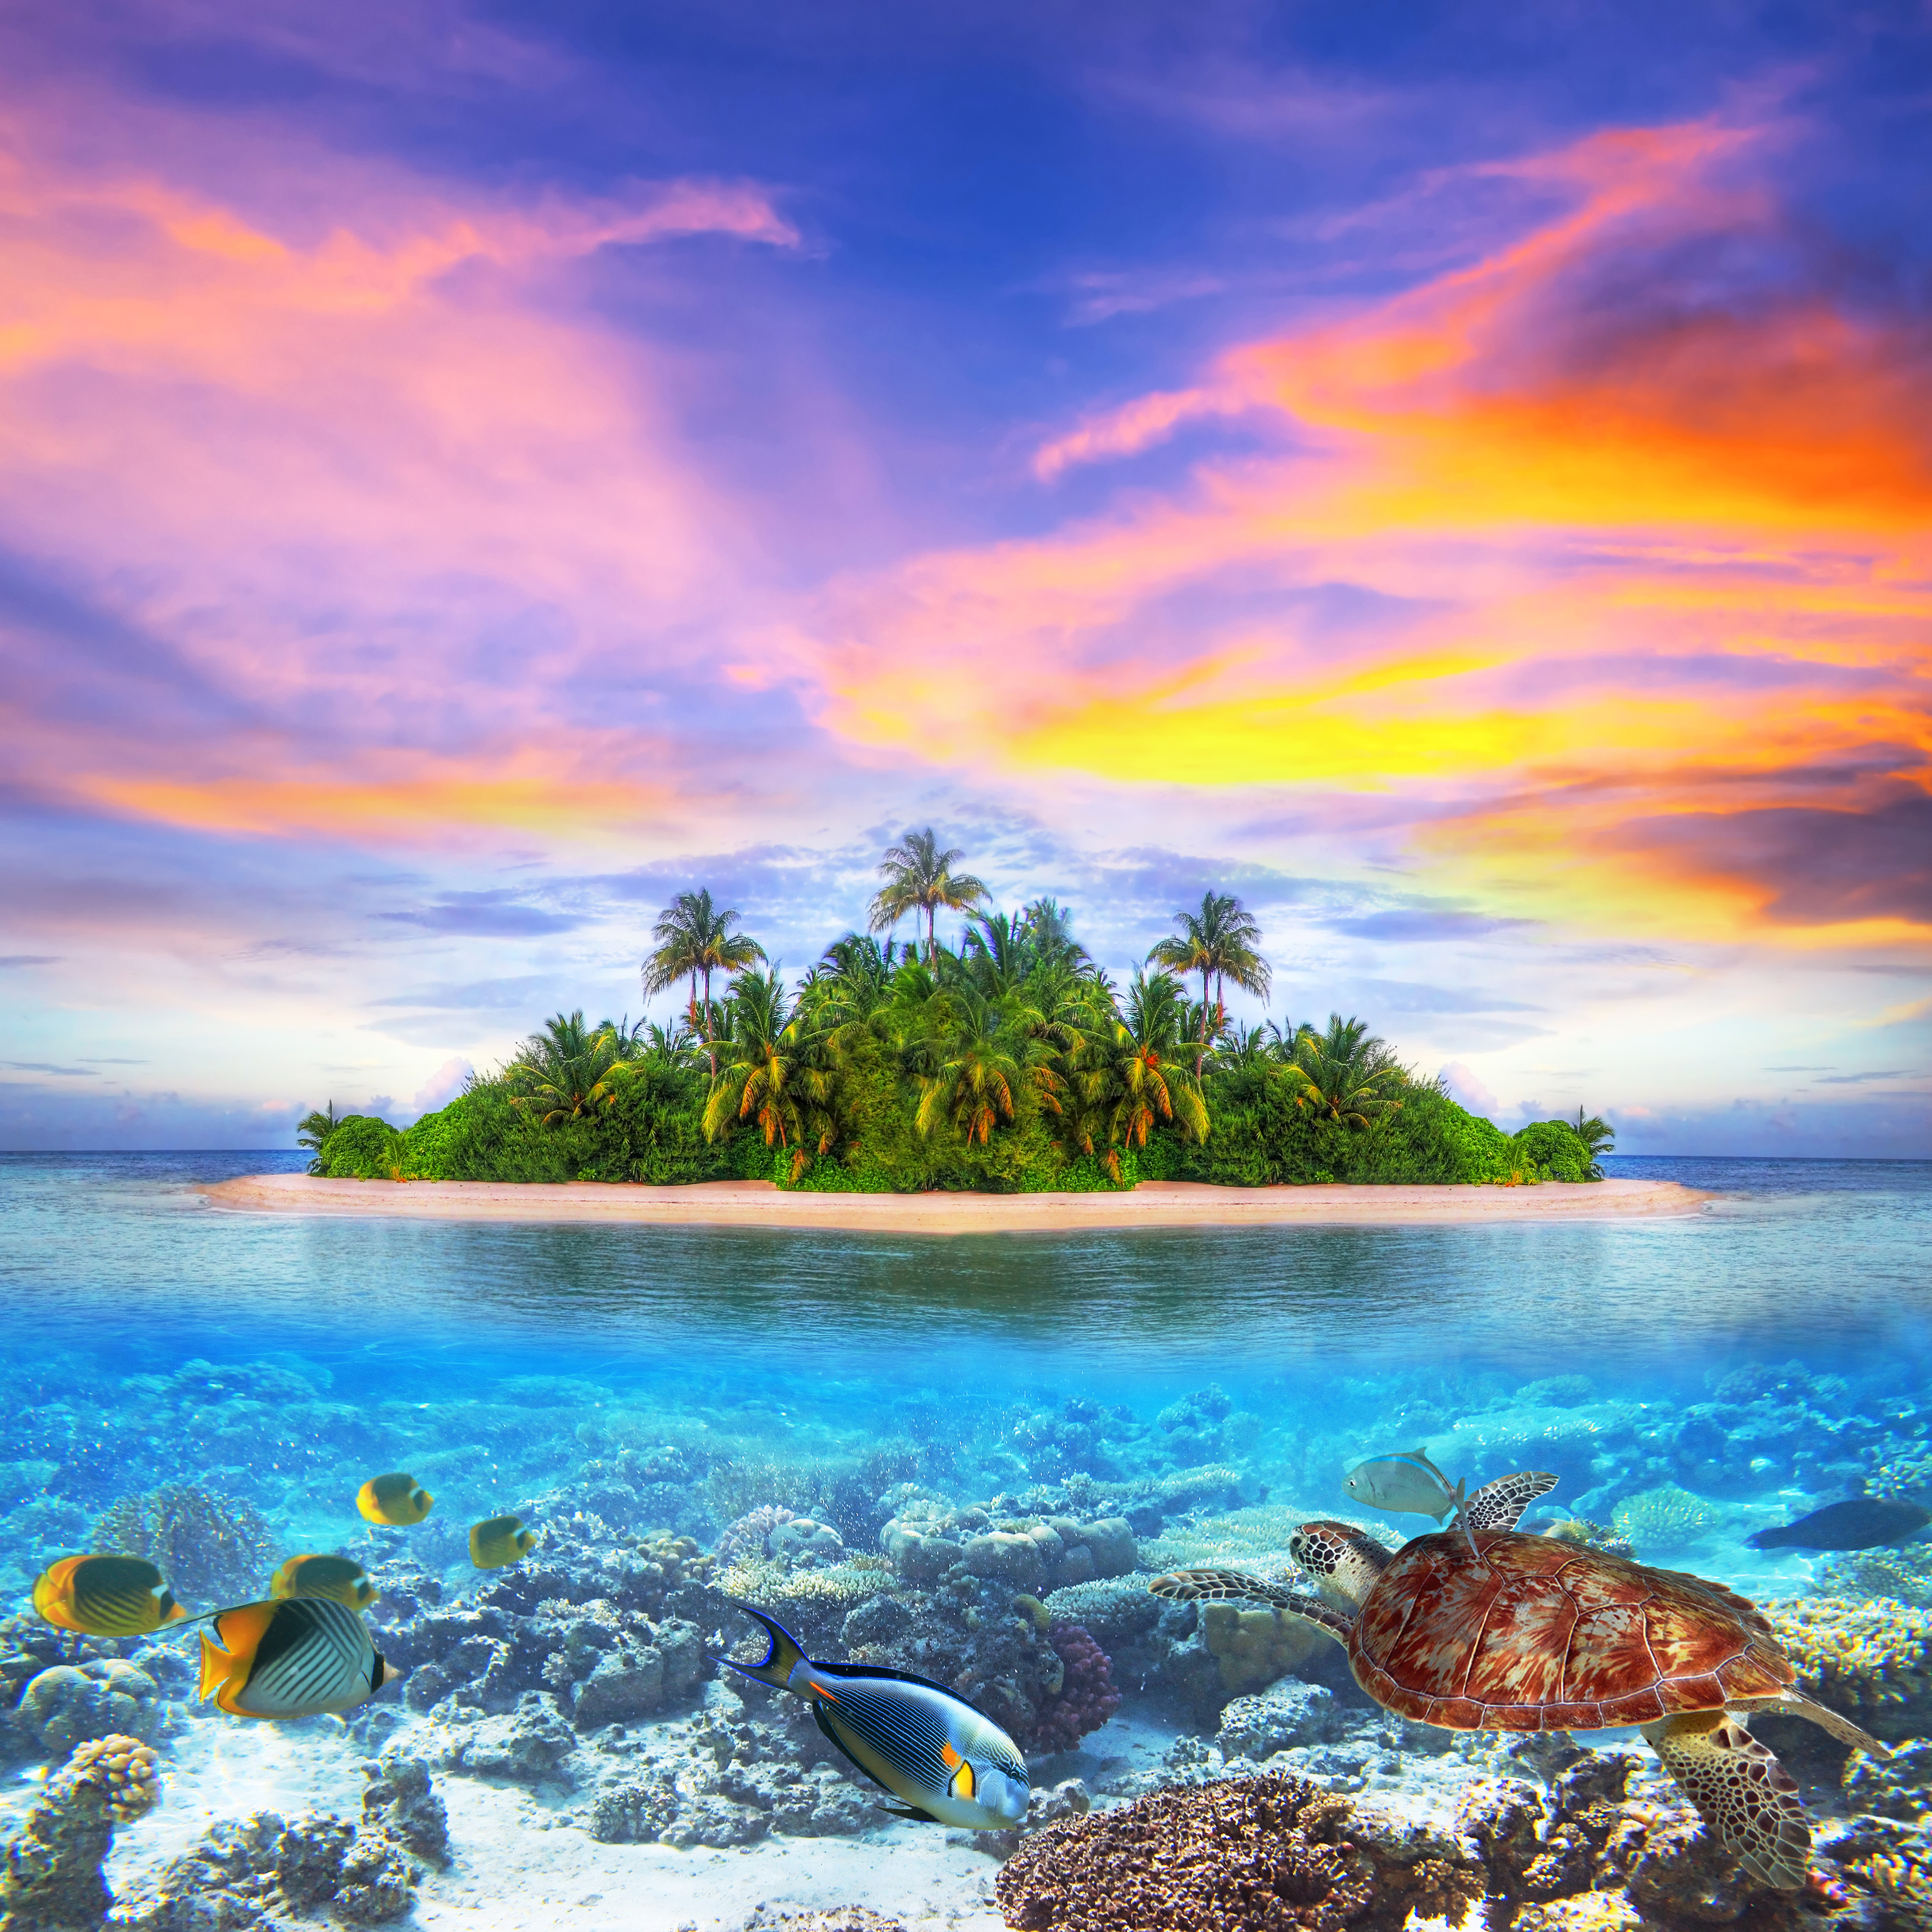 Tropical island of Maldives with marine life